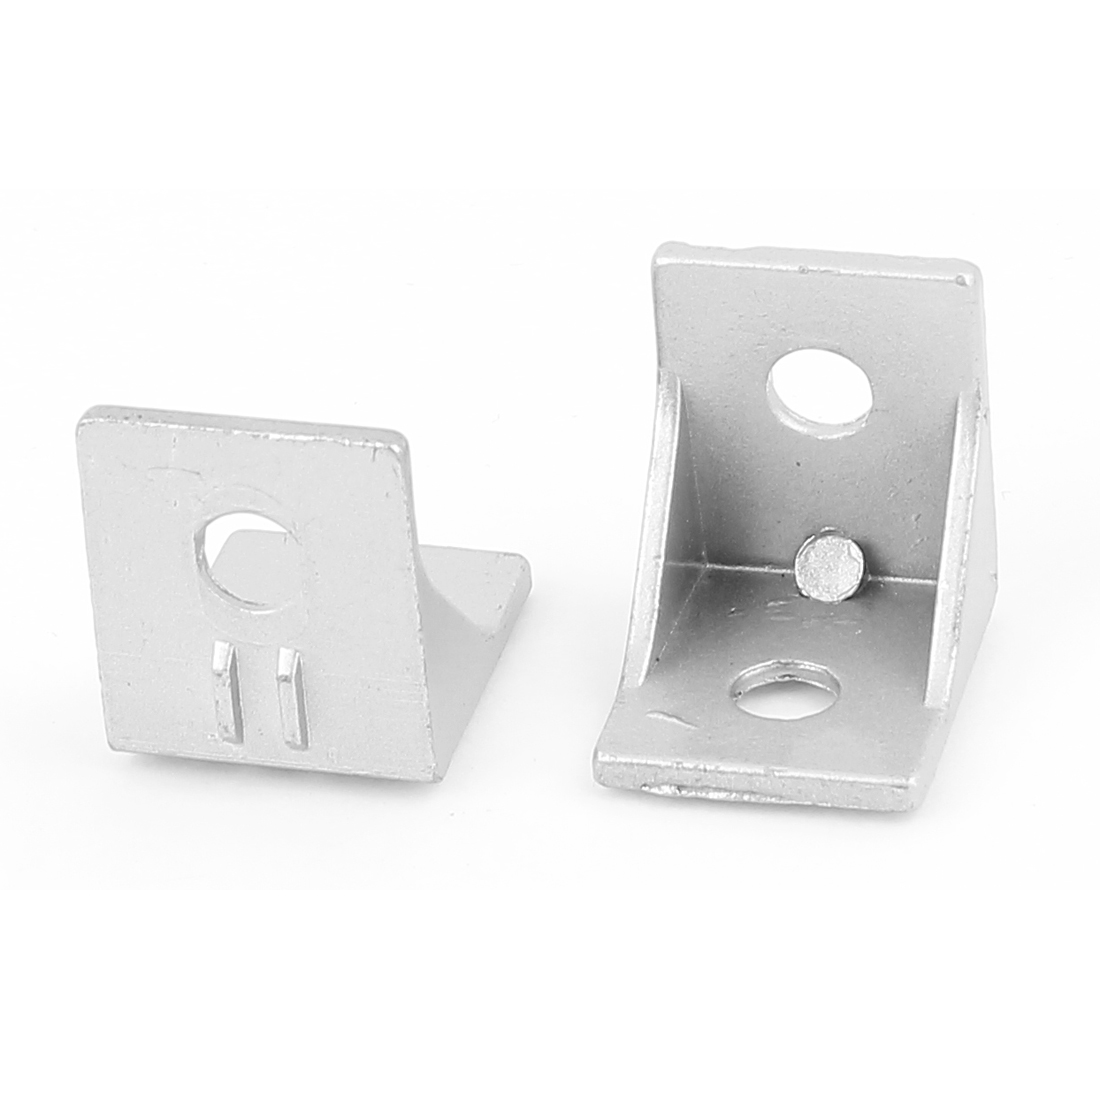 35mmx35x30mm 90 Degree Silver Tone Aluminum Alloy Angle Corner Bracket 2pcs